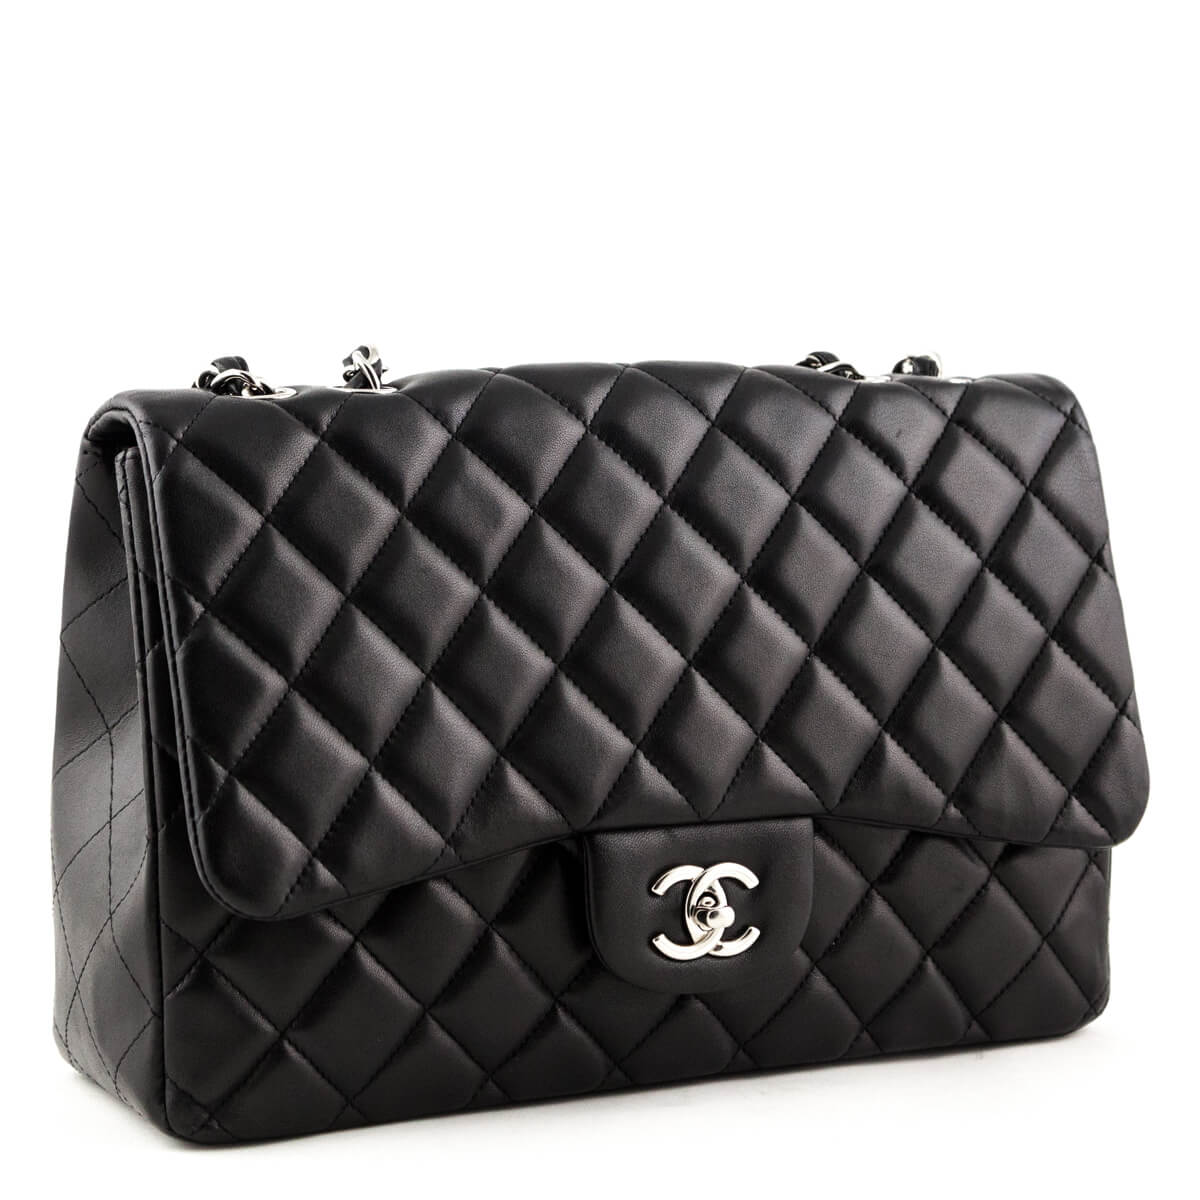 21596f3620ec ... Chanel Black Lambskin Jumbo Classic Single Flap Bag SHW - LOVE that BAG  - Preowned Authentic ...